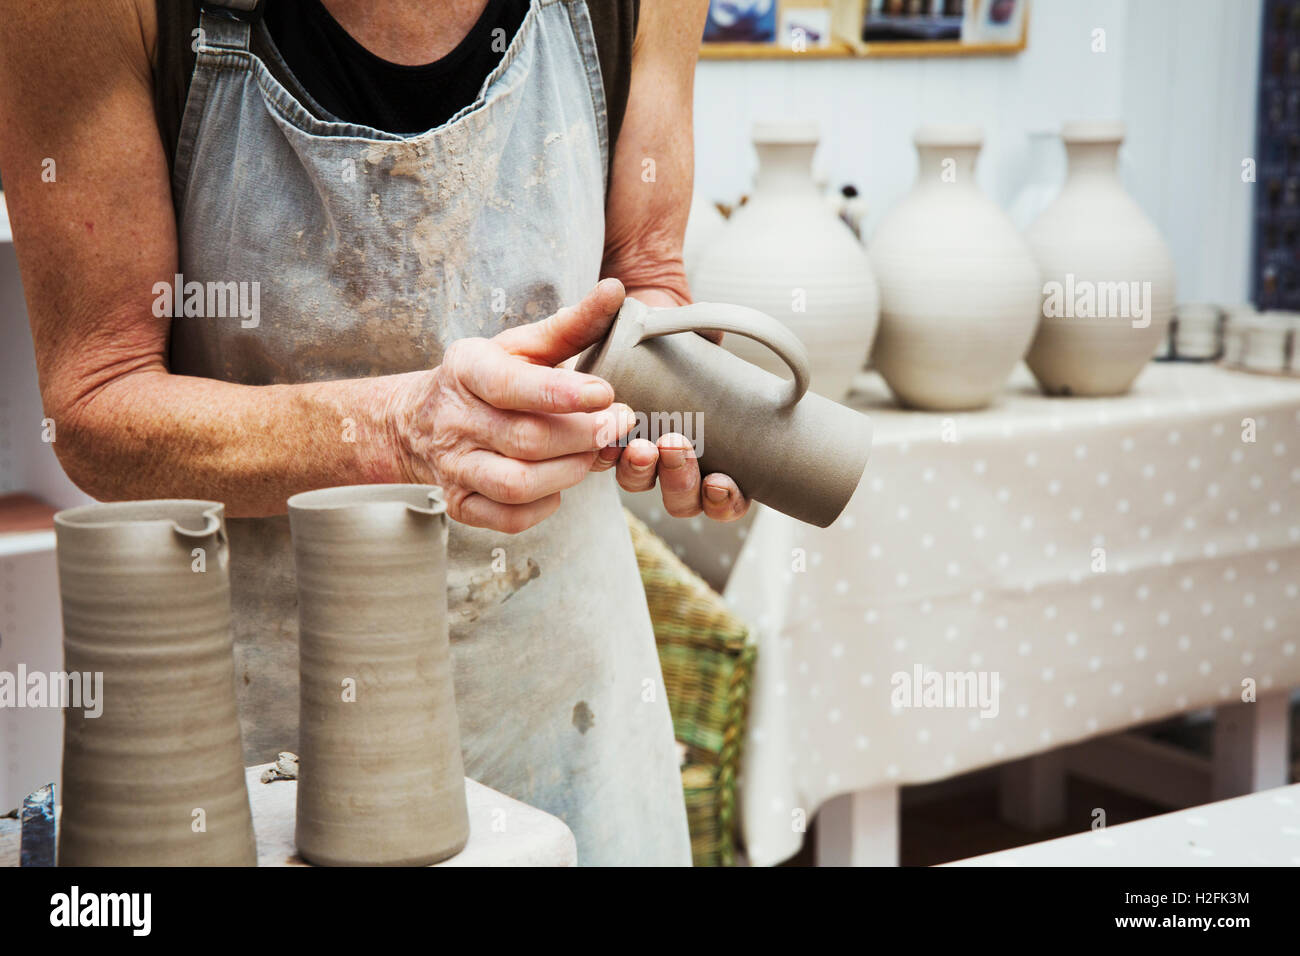 A potter handling a wet clay pot, smoothing the bottom and preparing it for kiln firing. Stock Photo